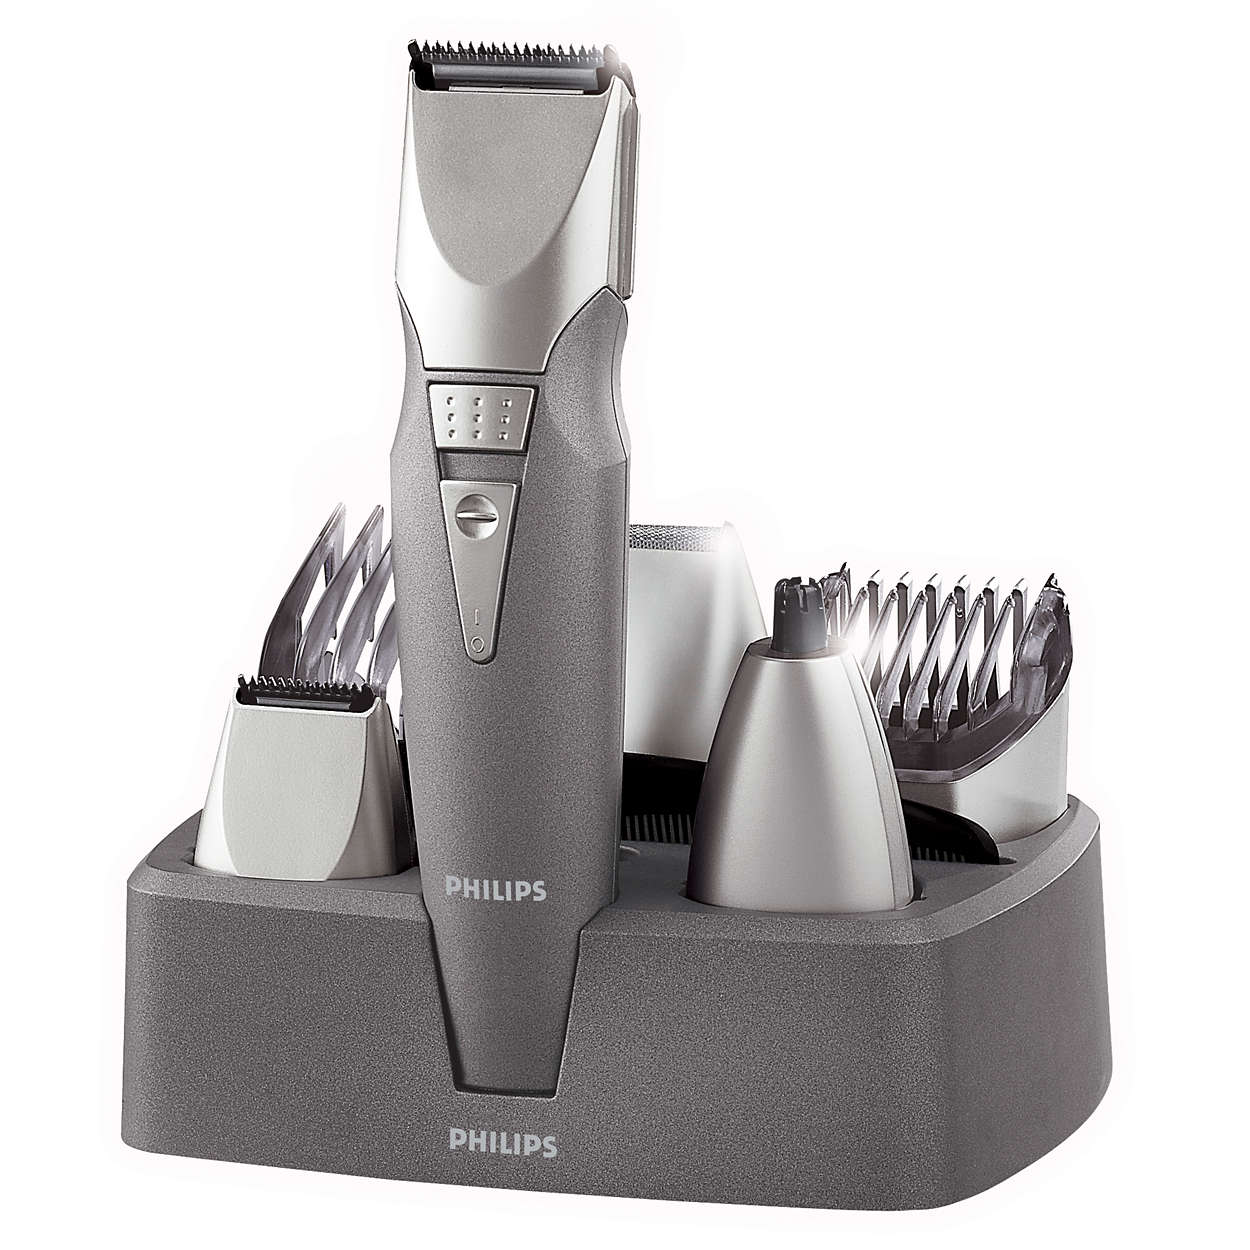 7 in 1 Grooming kit